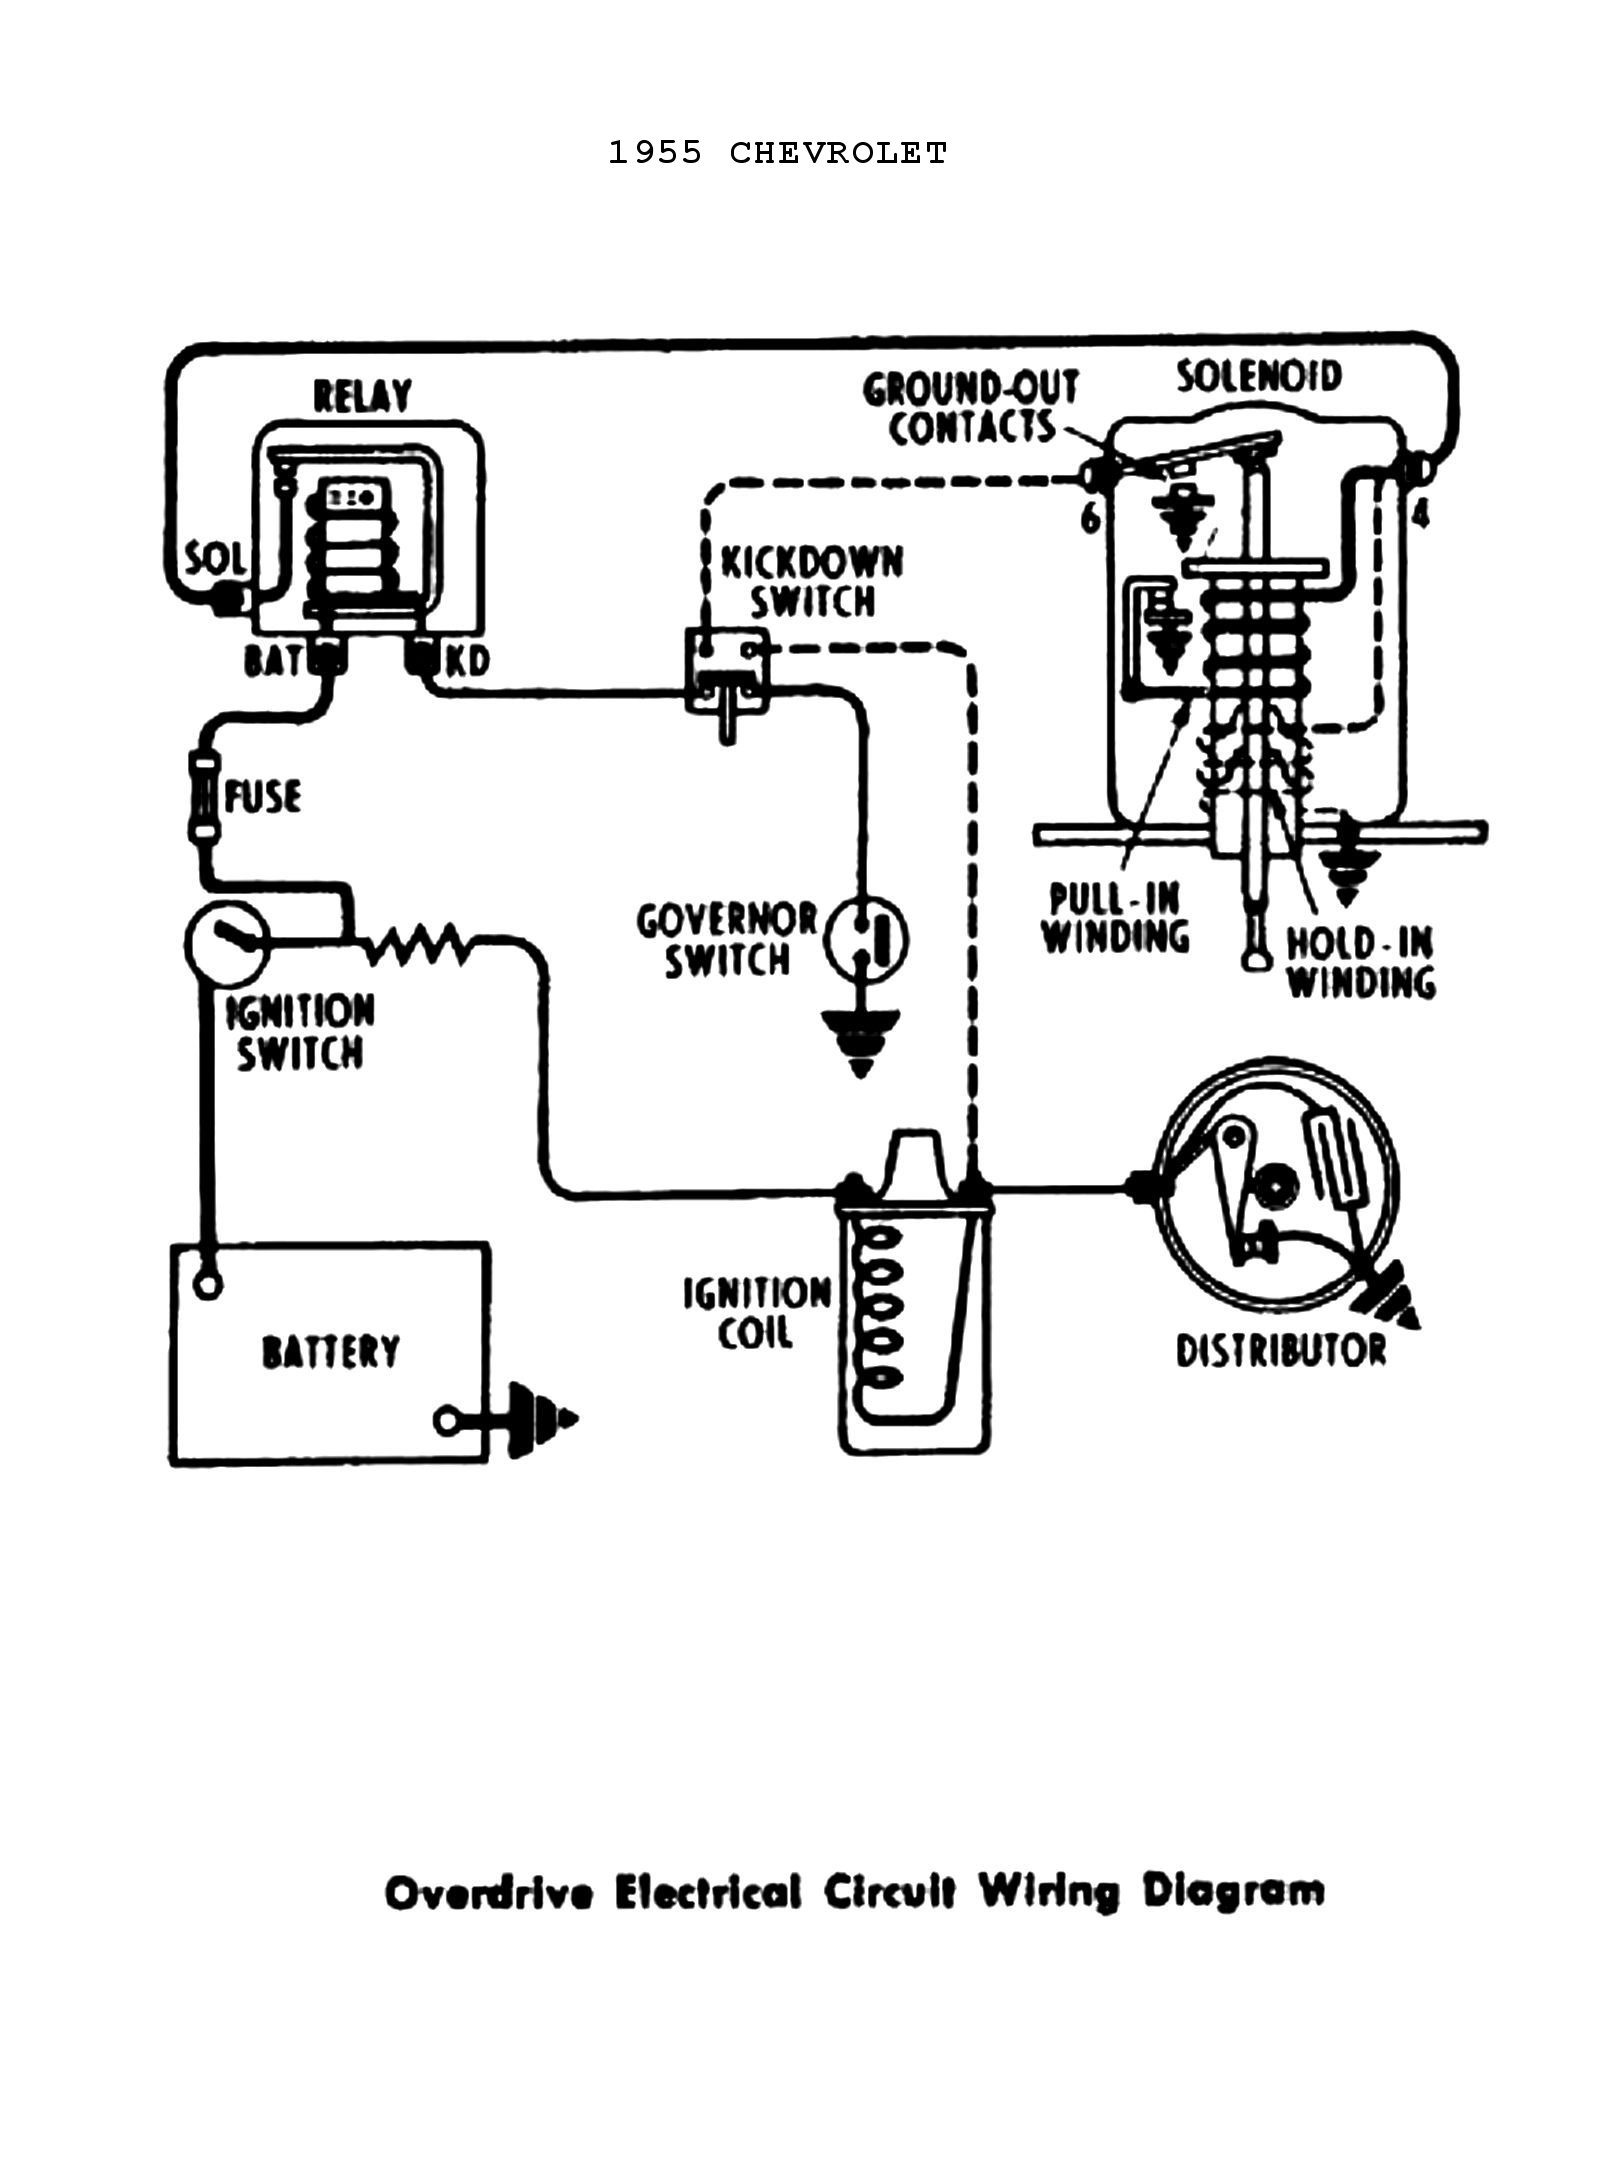 Delco Alternator External Regulator Wiring - Wiring Diagram ... on sh626-12 voltage regulator diagram, voltage regulator capacitor, voltage regulator controls, voltage regulator schematic, 69 mustang starting systems diagram, voltage regulator adjustment, voltage regulator operation, voltage regulator alternator, circuit diagram, voltage regulator ford, voltage regulator wiper motor, voltage regulator circuit, voltage regulator transformer, voltage regulator fuse, 12 volt voltage regulator diagram, voltage regulator power, 2n3055 voltage regulator diagram, voltage regulator plug, voltage regulator toyota, voltage regulator troubleshooting,